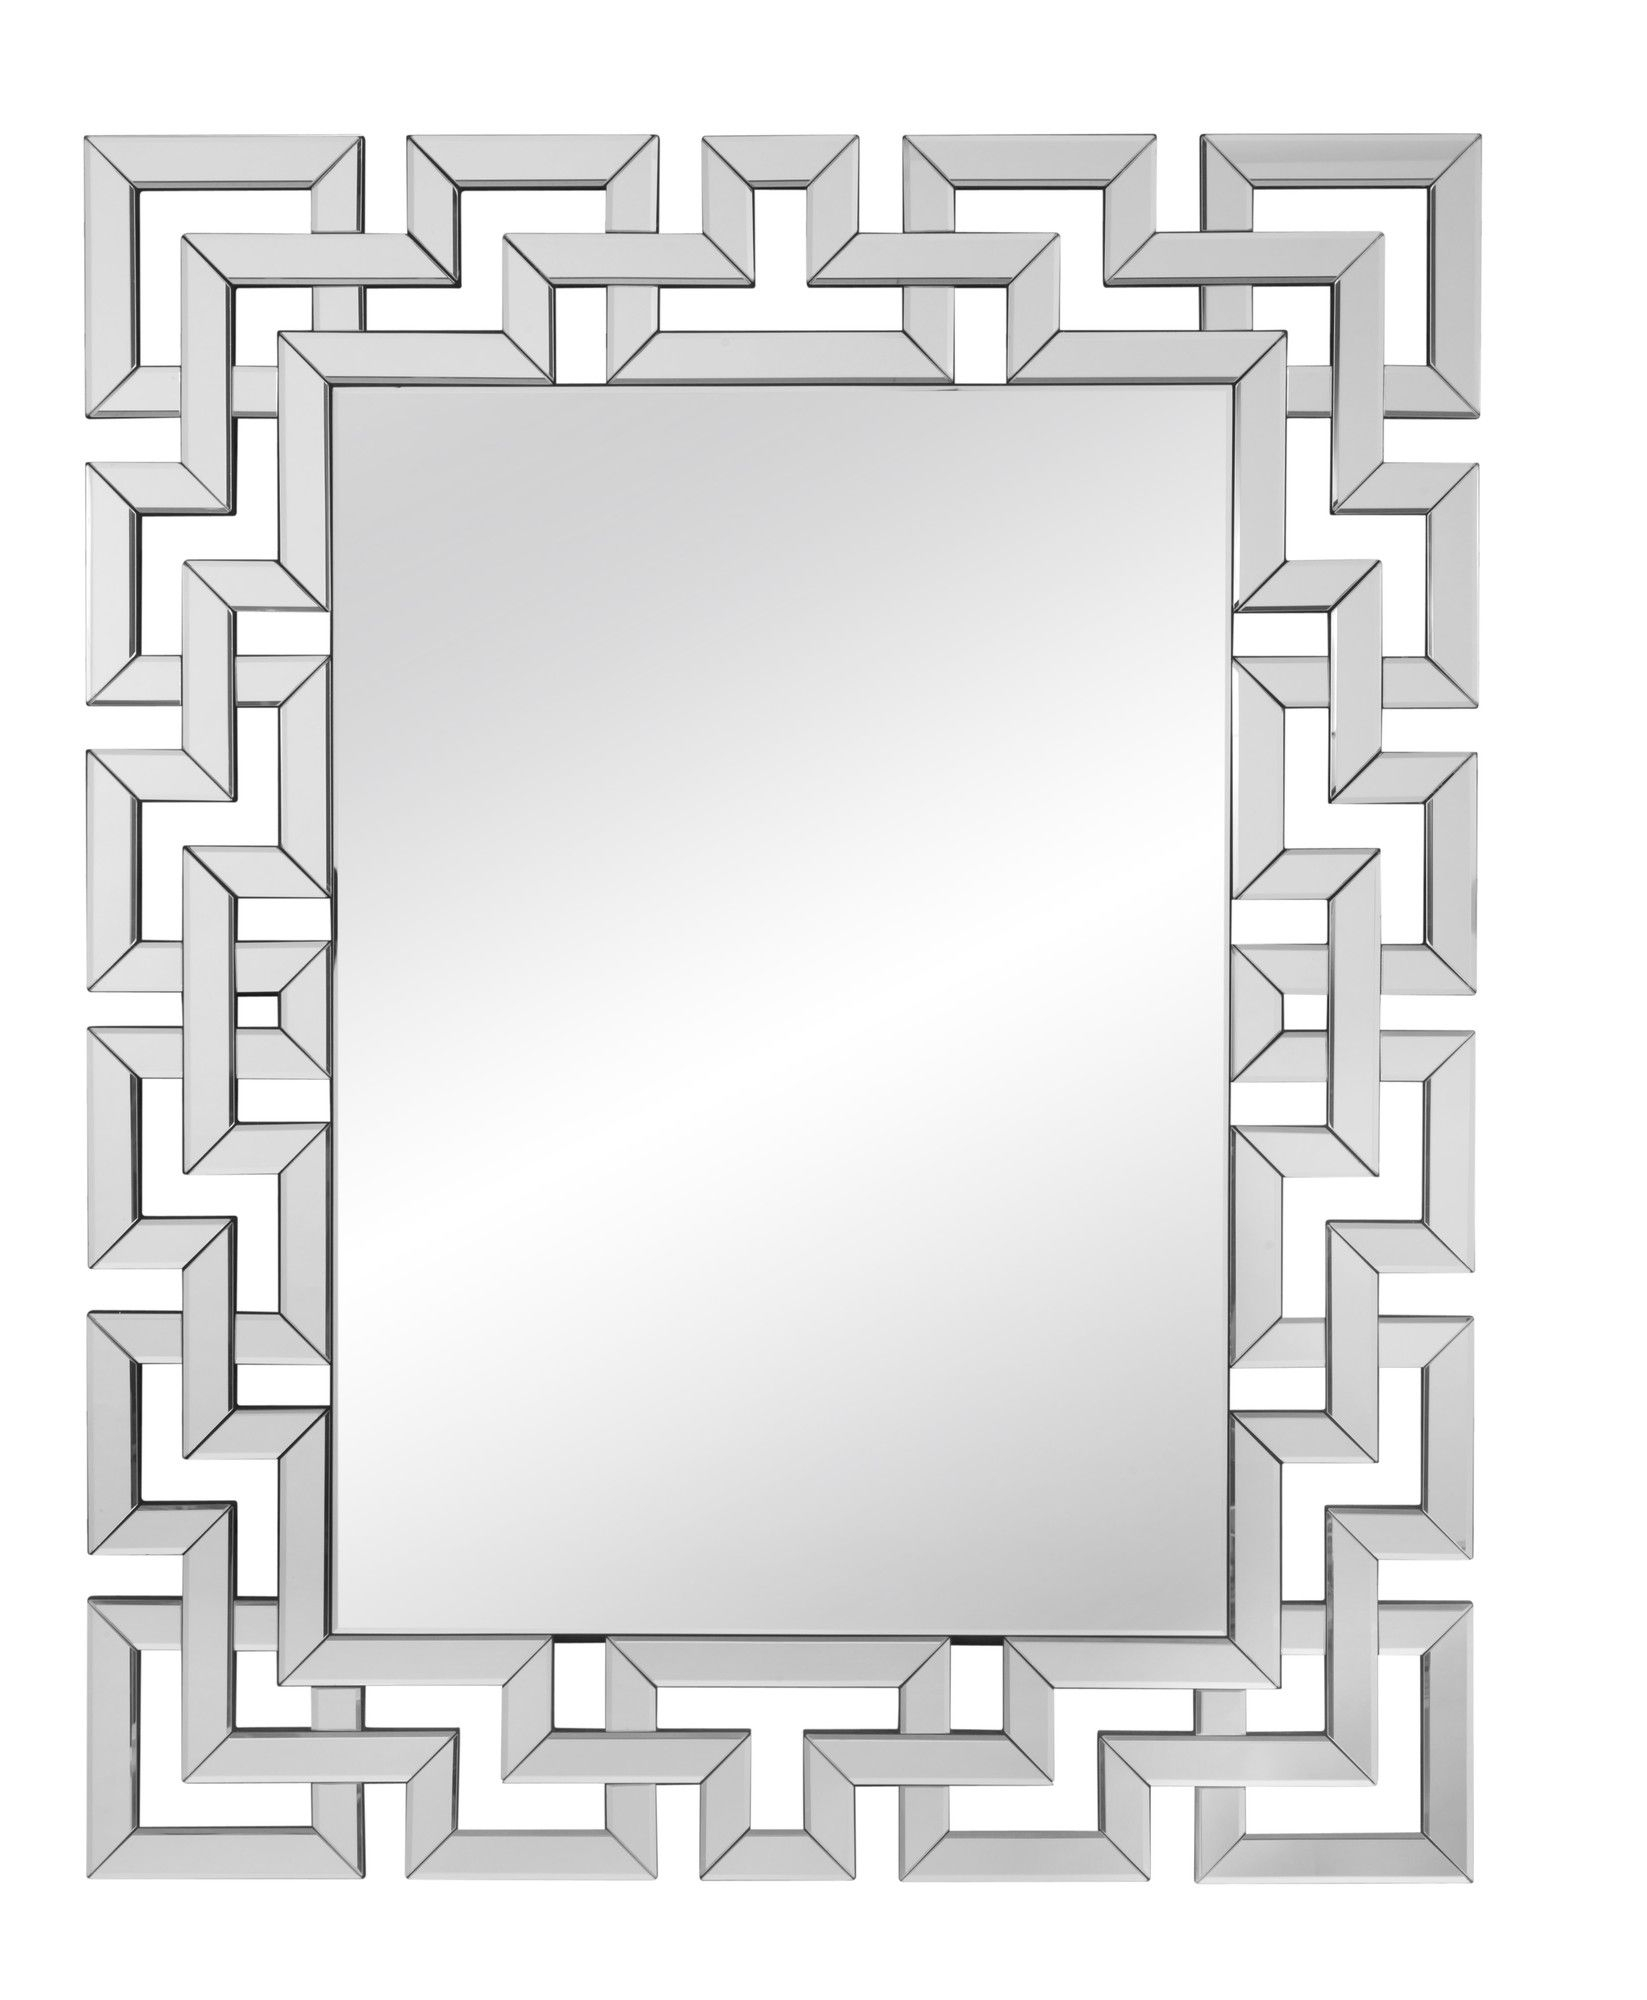 Silver Geometric Maze Wall Mirror (View 4 of 20)